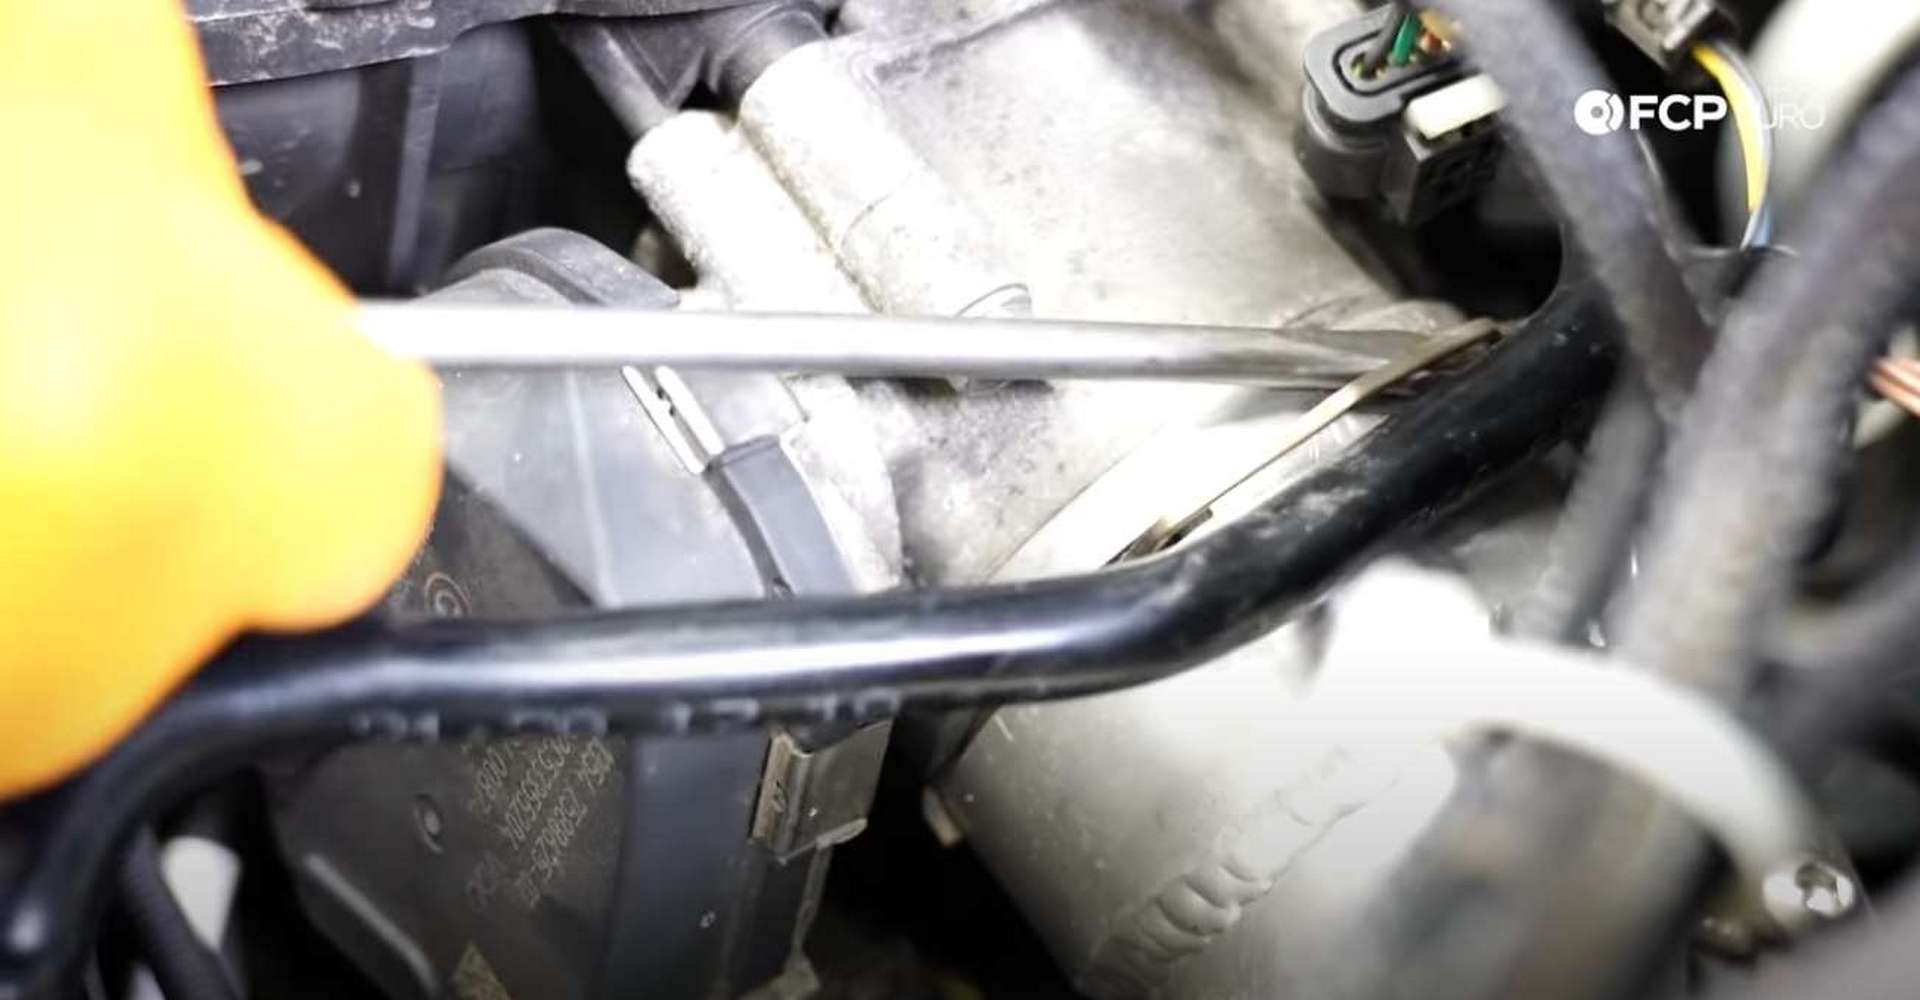 DIY BMW F30 Oil Filter Housing Gasket Replacement unlocking the charge pipe connection